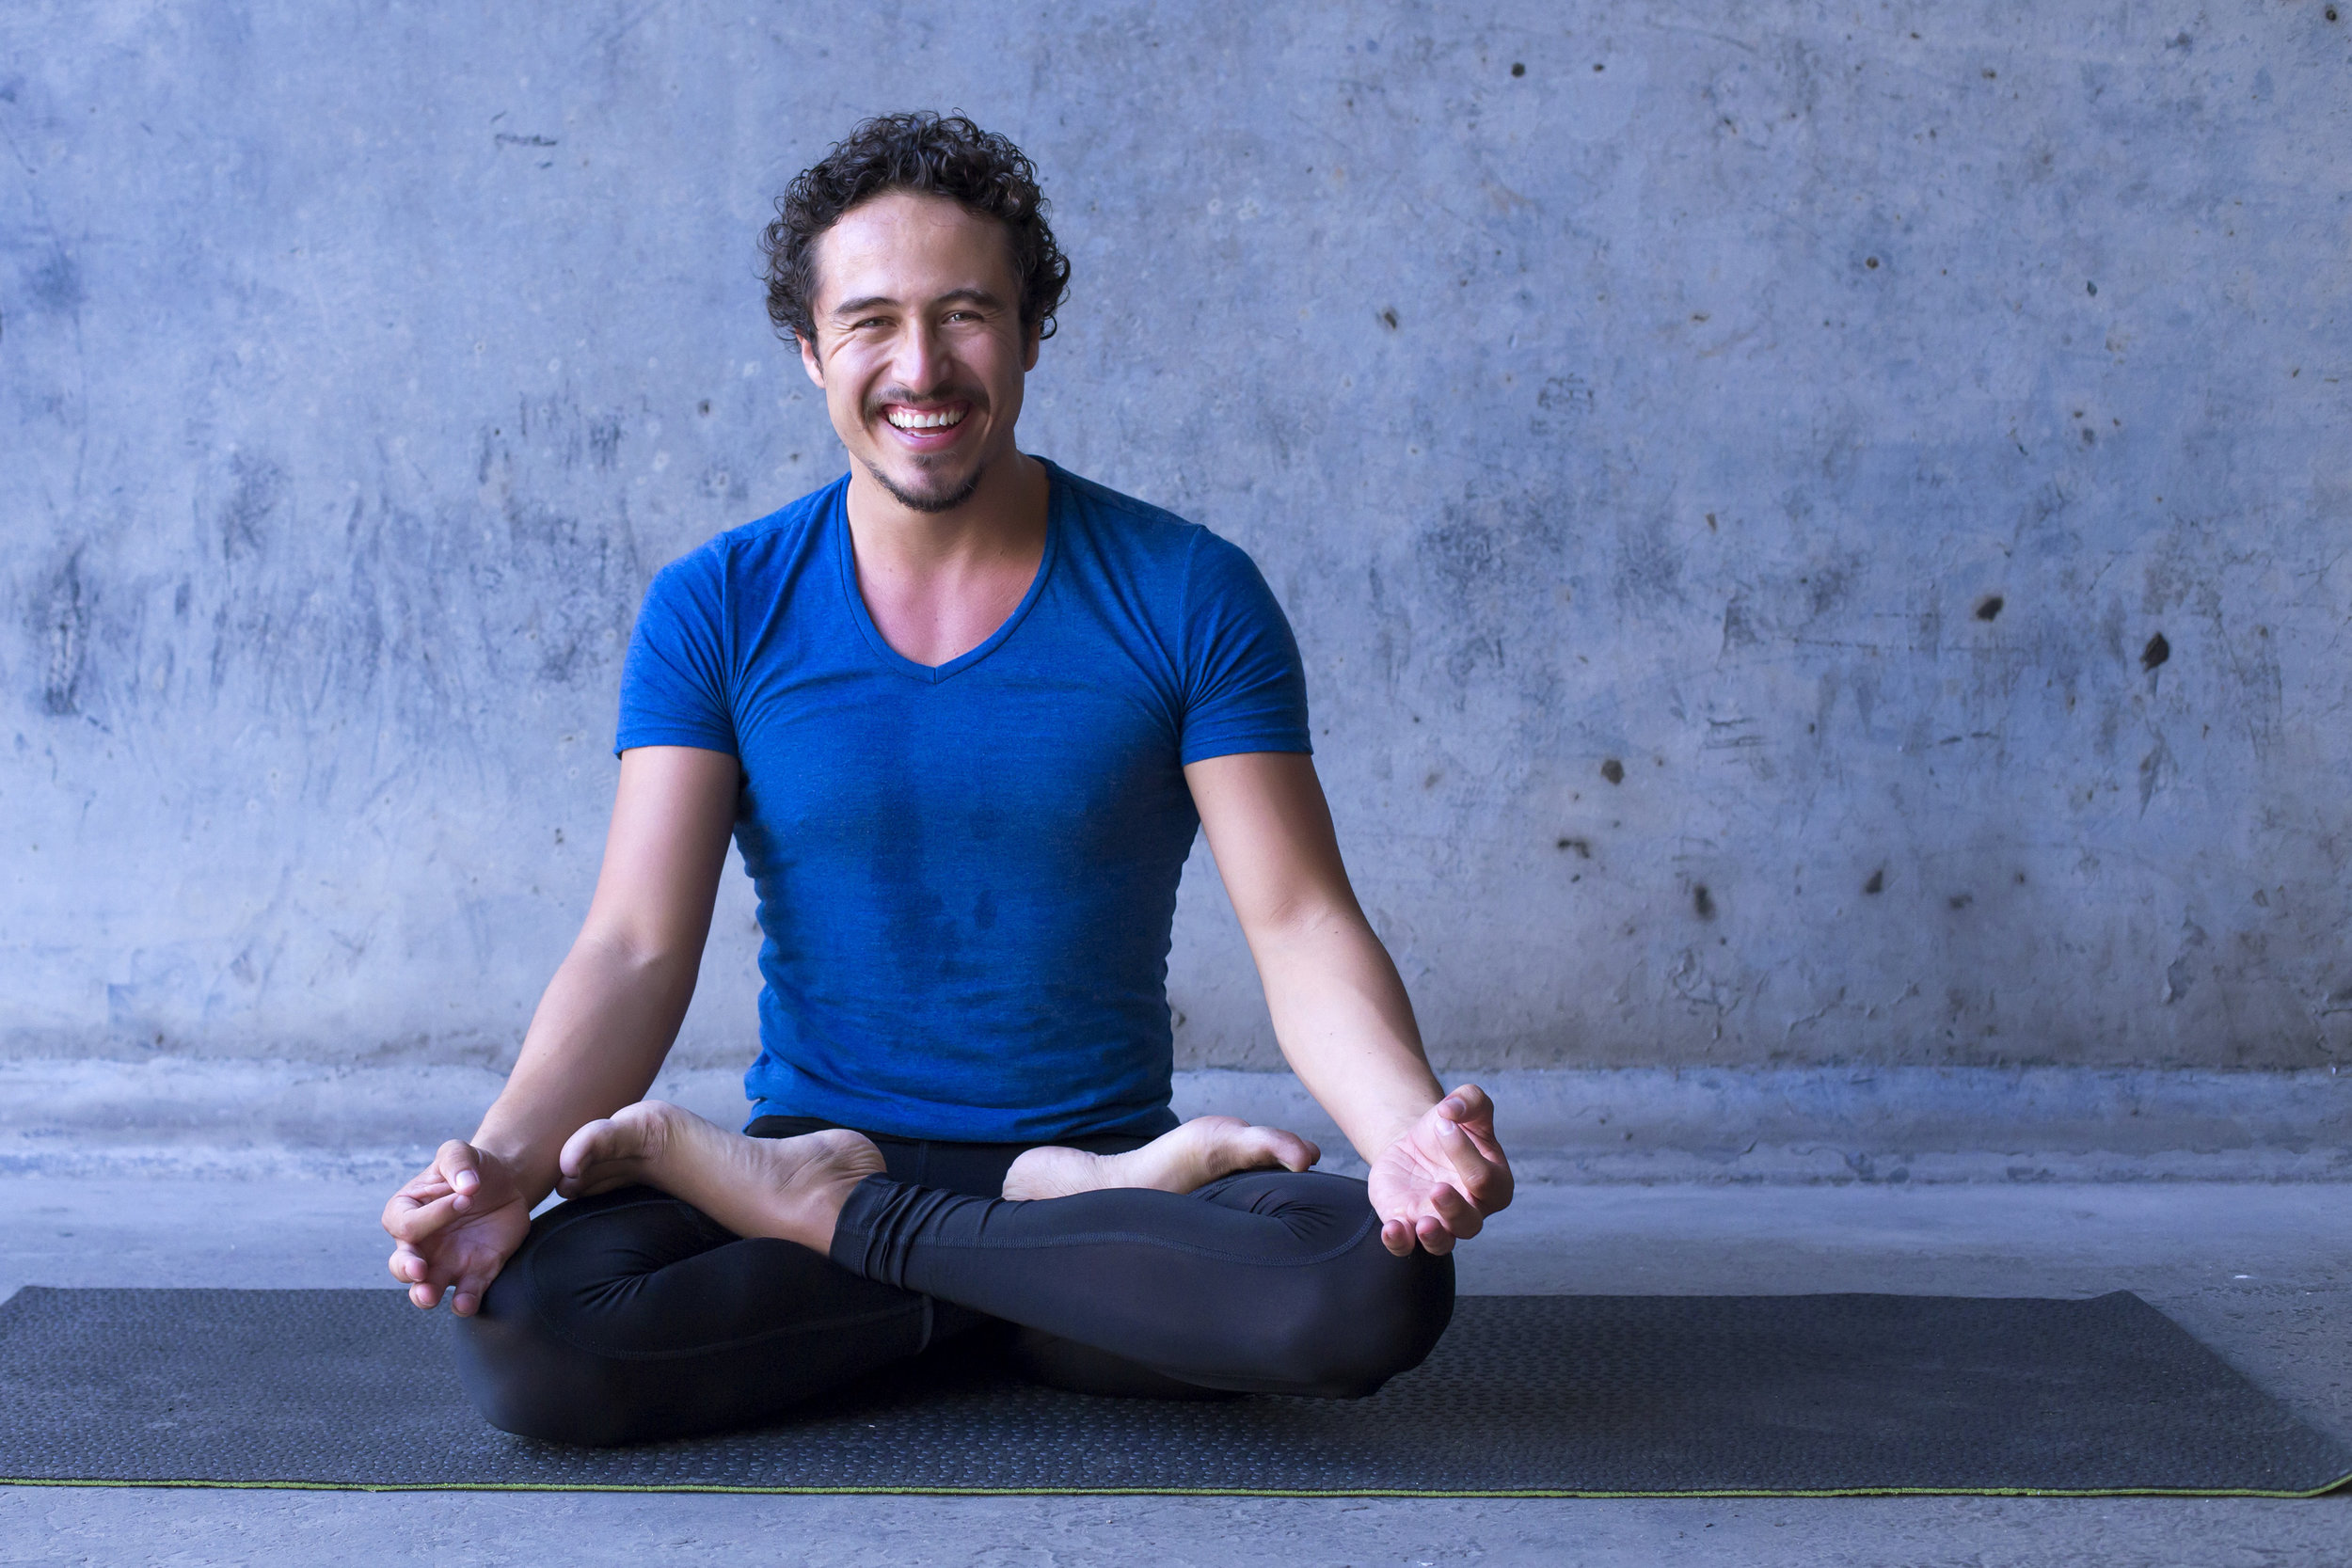 BREATHING FOR FOCUS& STRESS MANAGEMENT - Learn how to use the power of the breath to focus and master daily stress triggers.